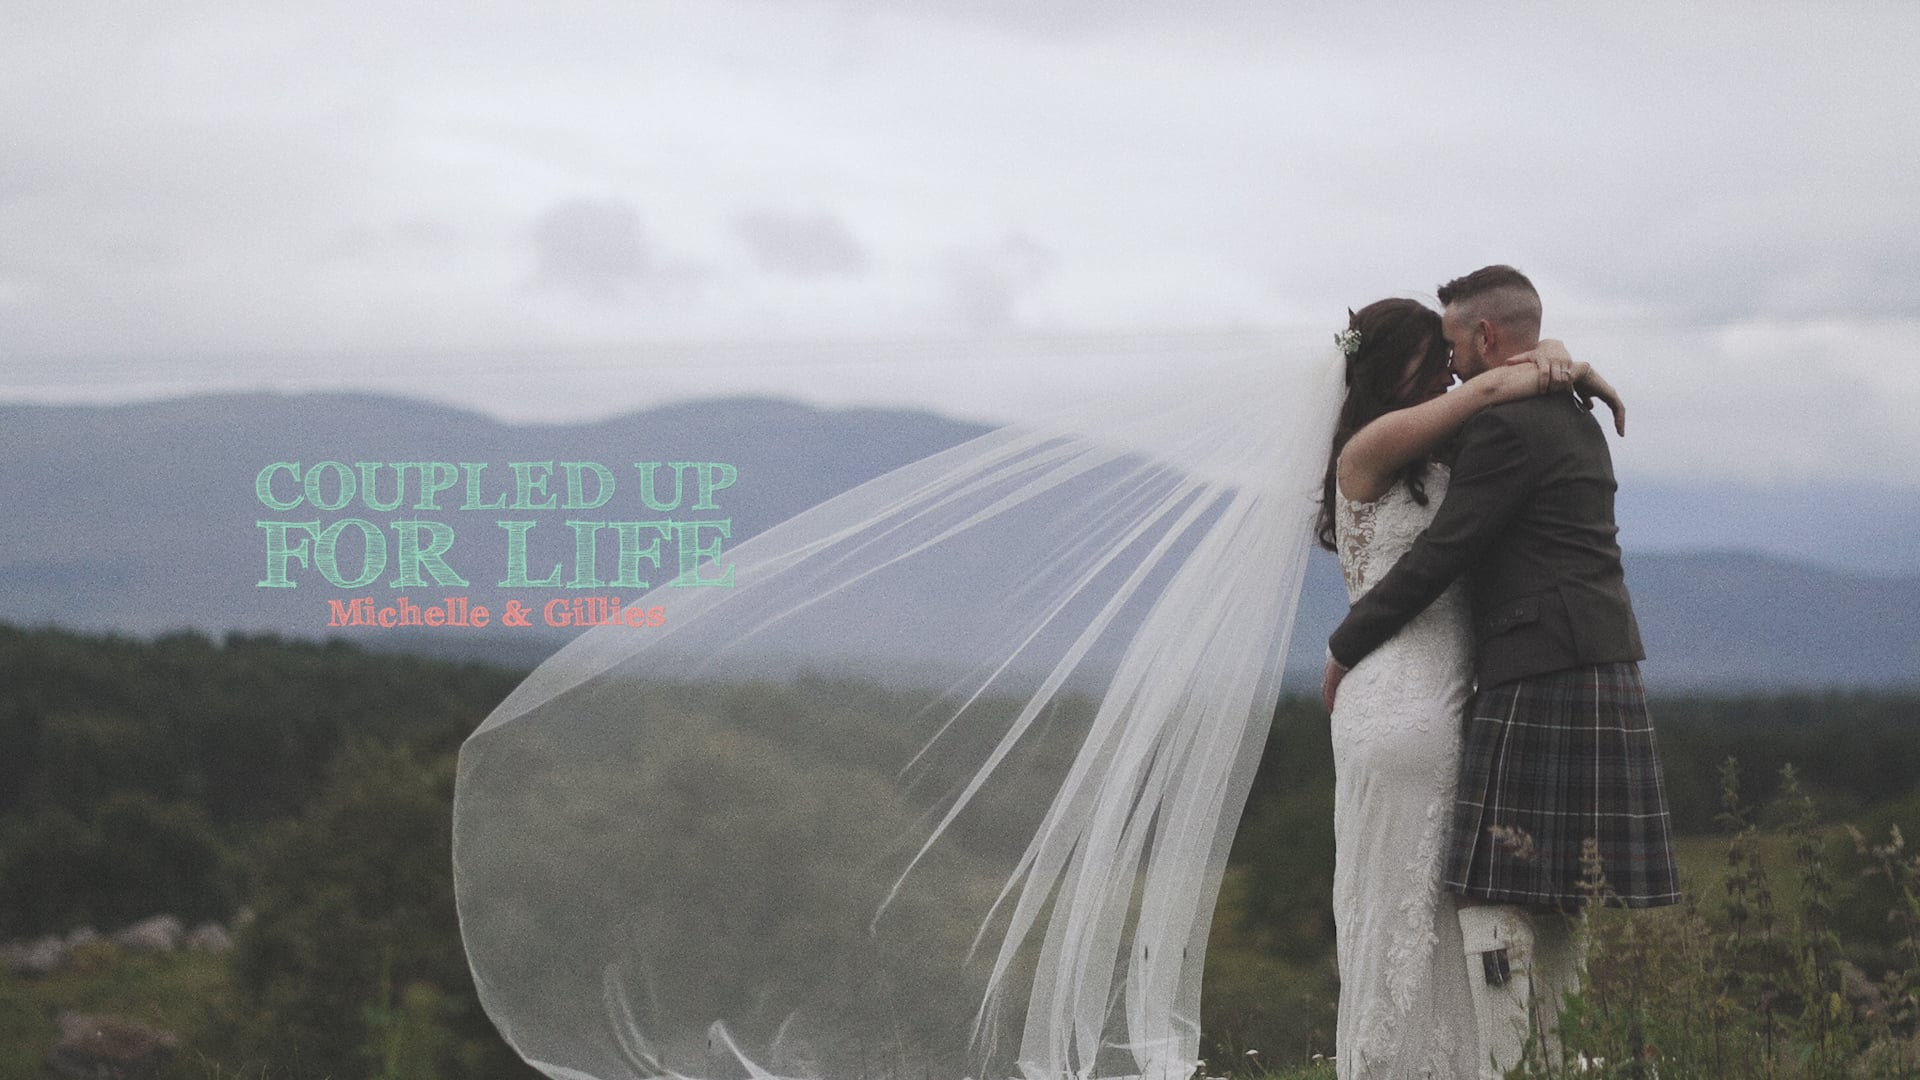 Coupled Up For Life by Michelle and Gillies